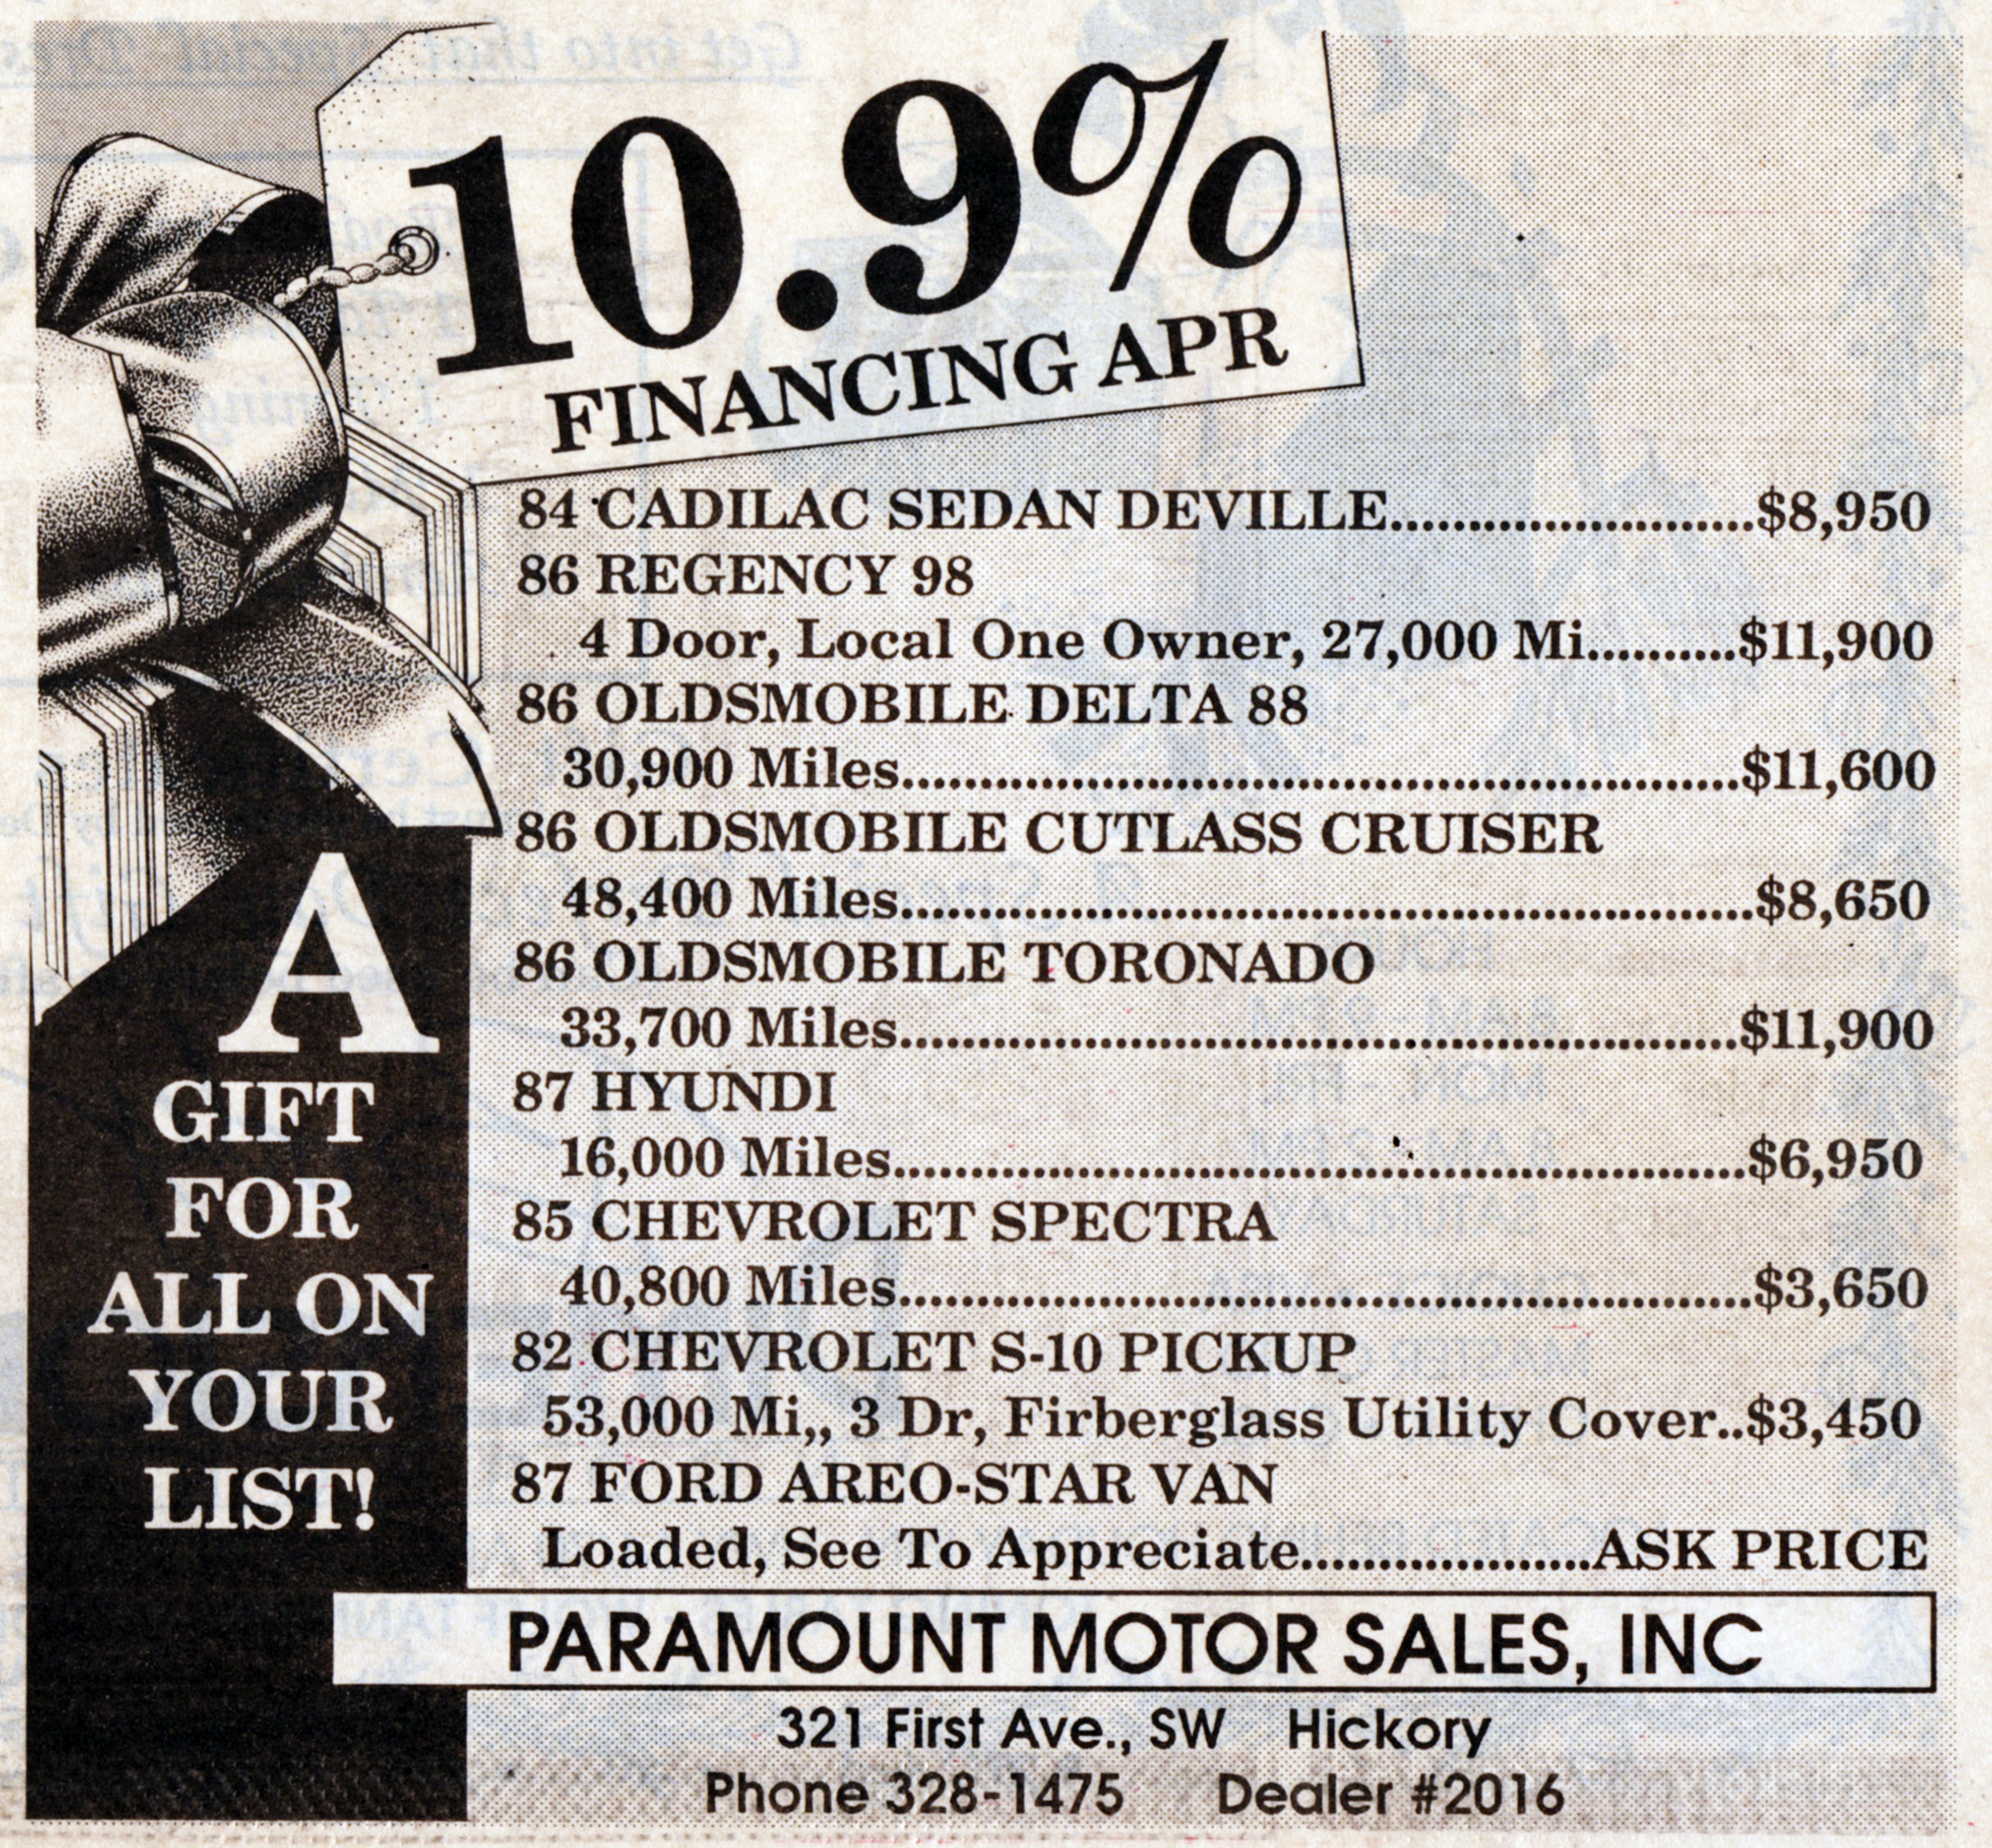 Advertisement for Paramount Motor Sales, Inc. published December 8, 1988.